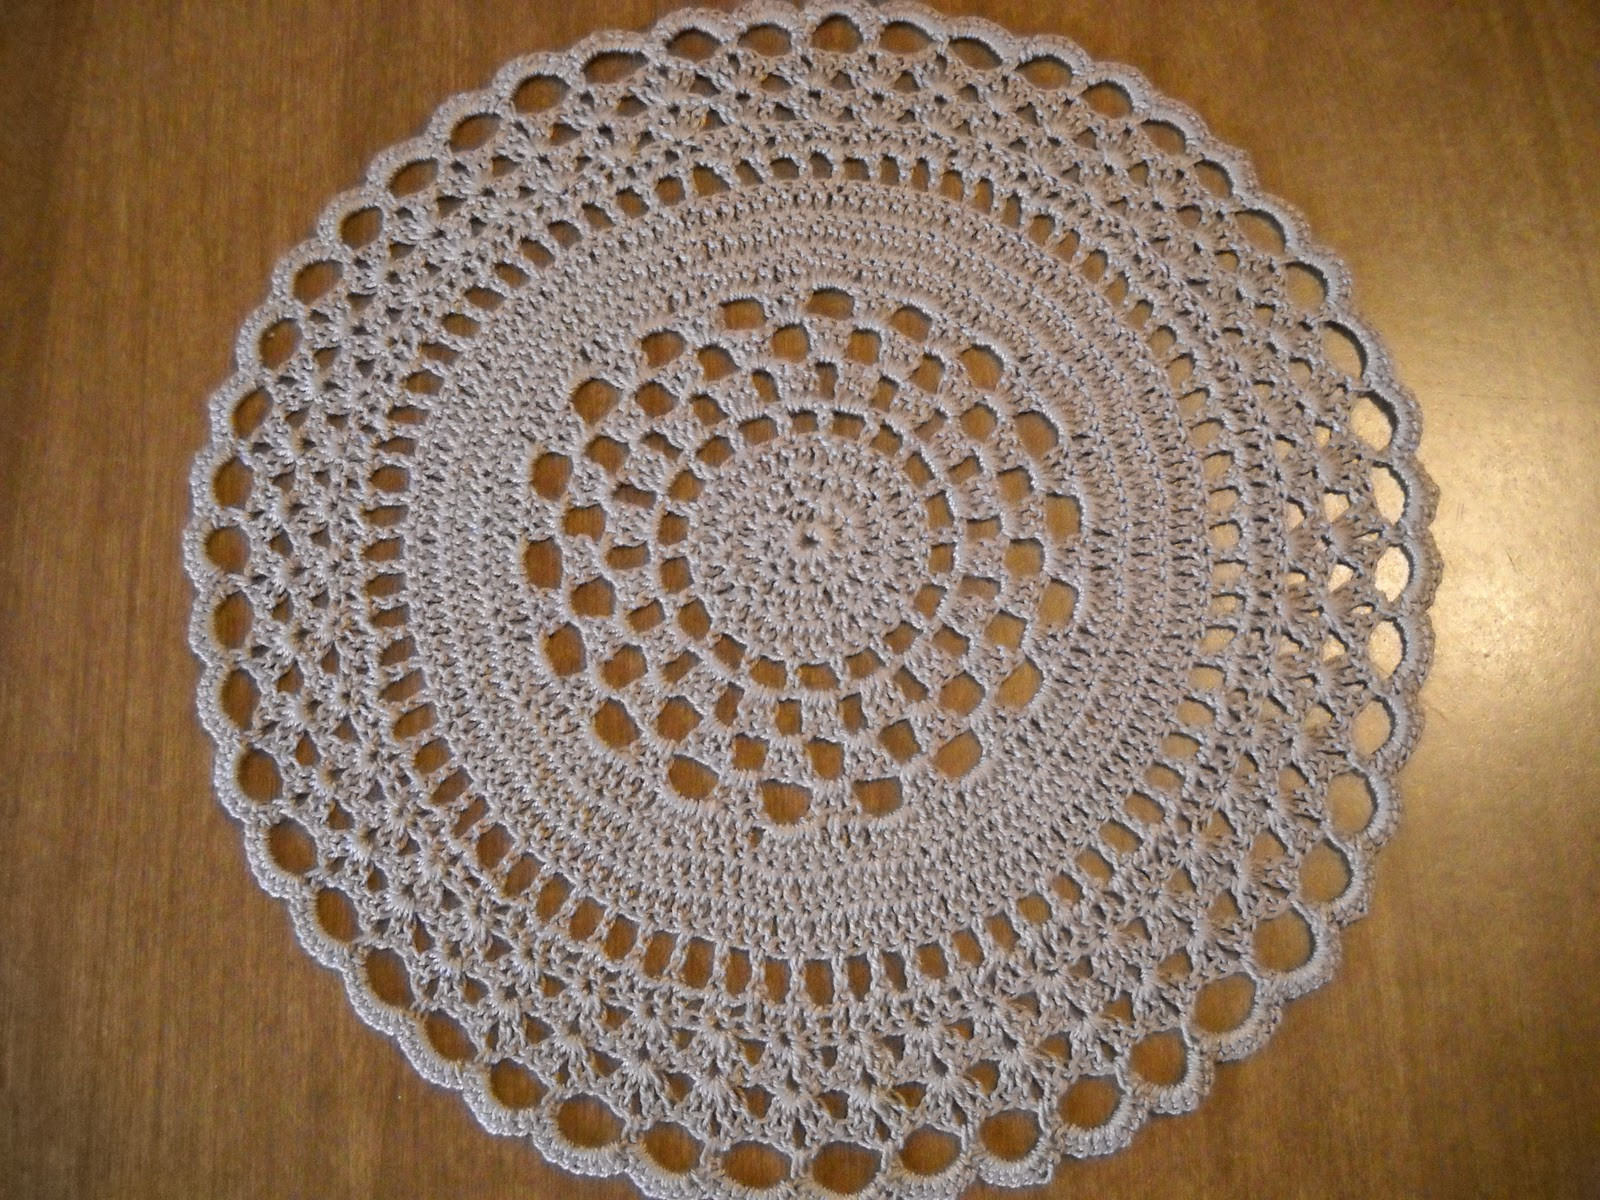 Crochet Round Tablecloth Pattern Free Awesome 15 Crochet Doily Patterns Of Incredible 48 Pictures Crochet Round Tablecloth Pattern Free